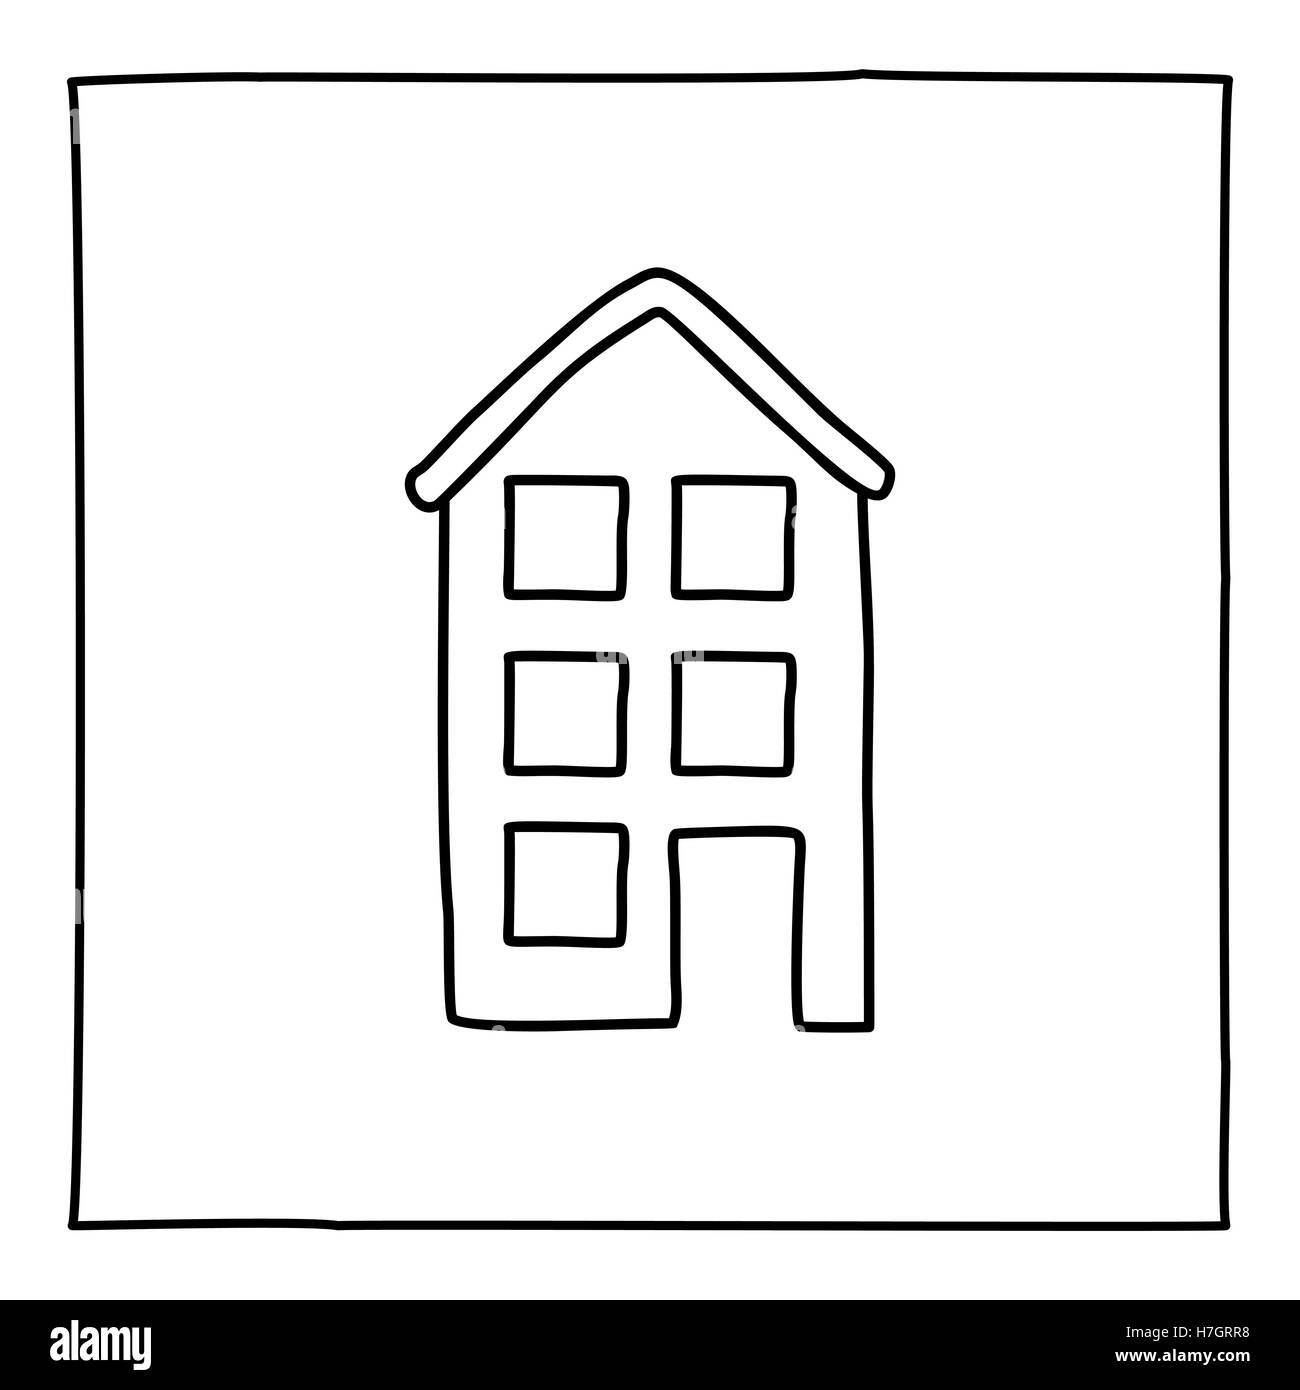 Apartment Building Graphic doodle apartment building icon. black and white symbol with frame